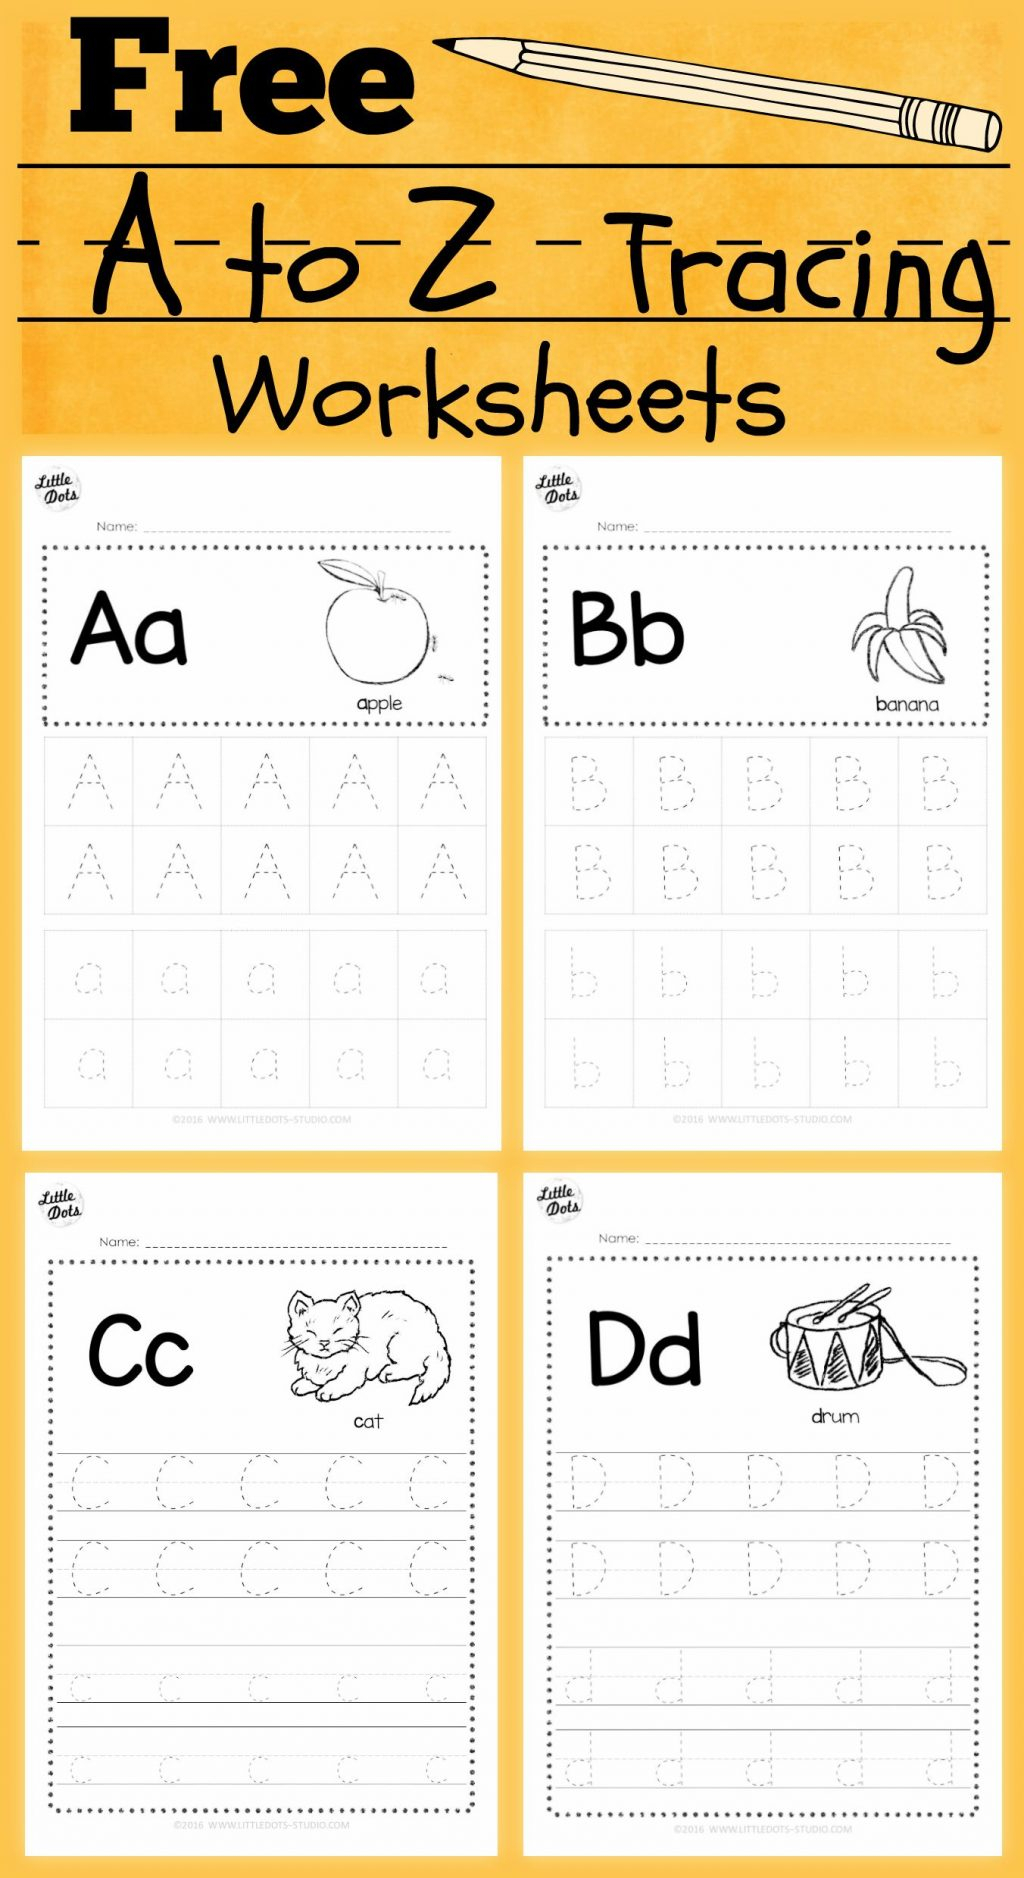 Download Free Alphabet Tracing Worksheets For Letter To Z within Tracing Letters Font Download